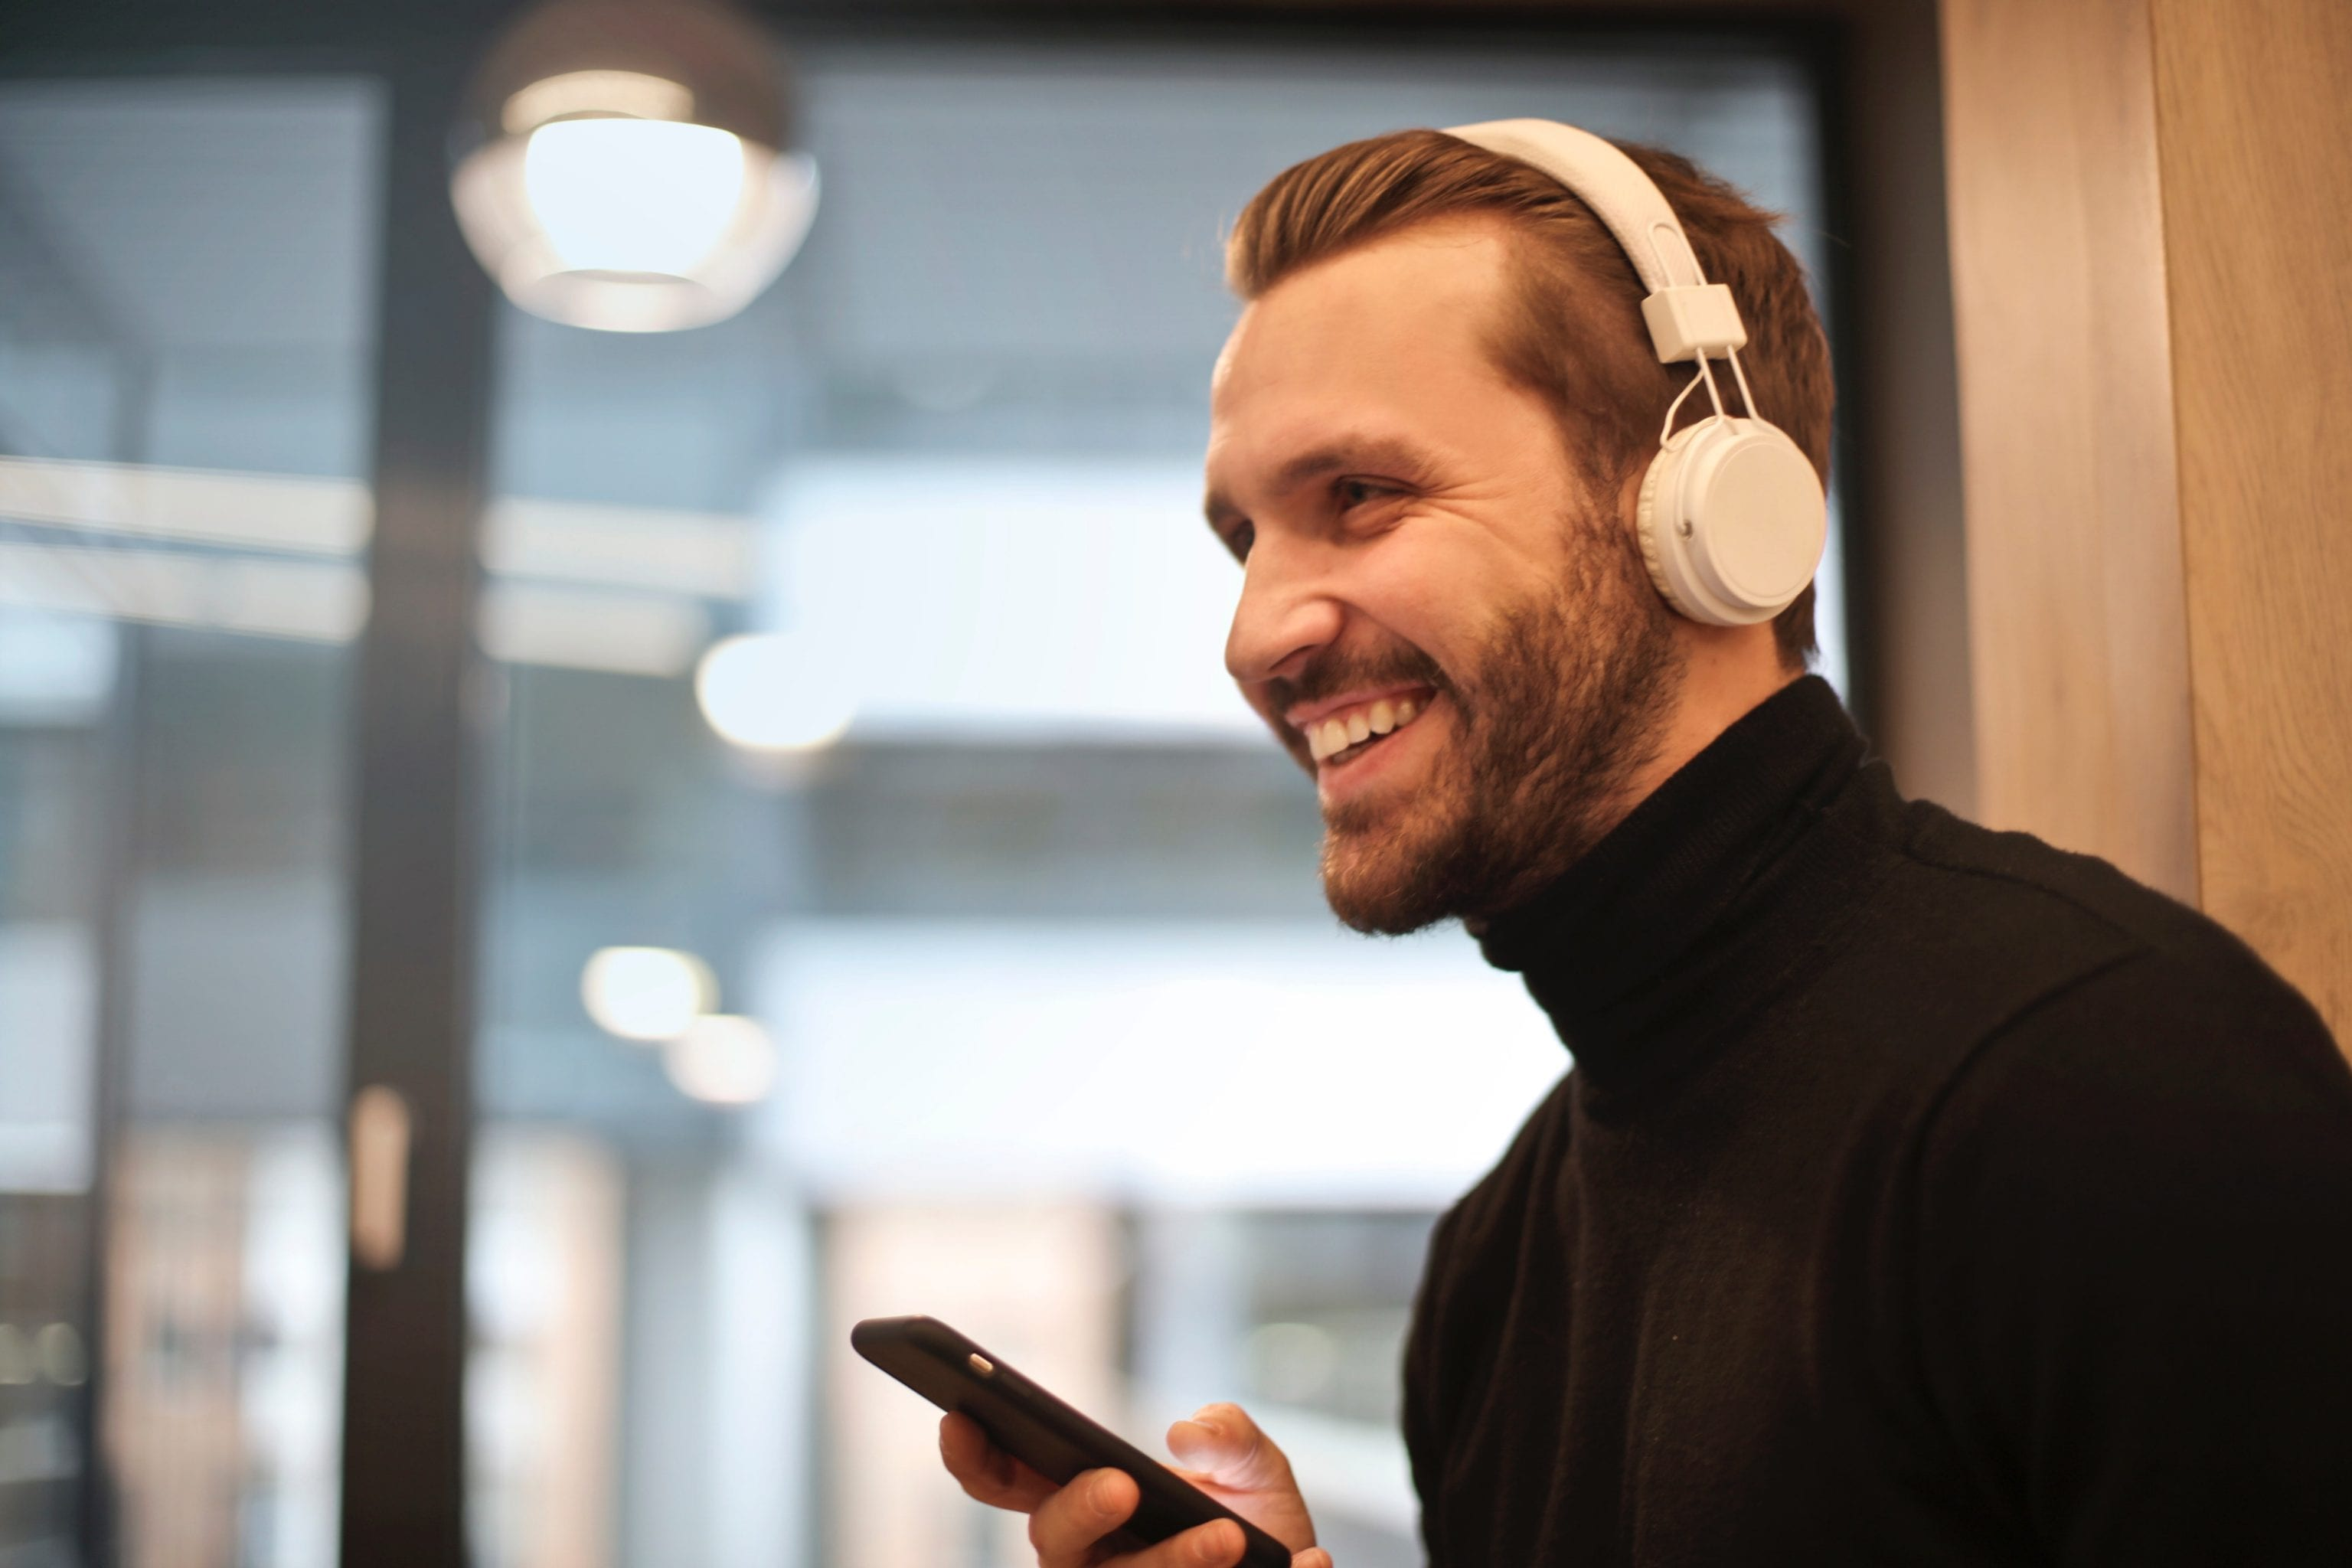 a man with facial hair is holding his phone and listening to music